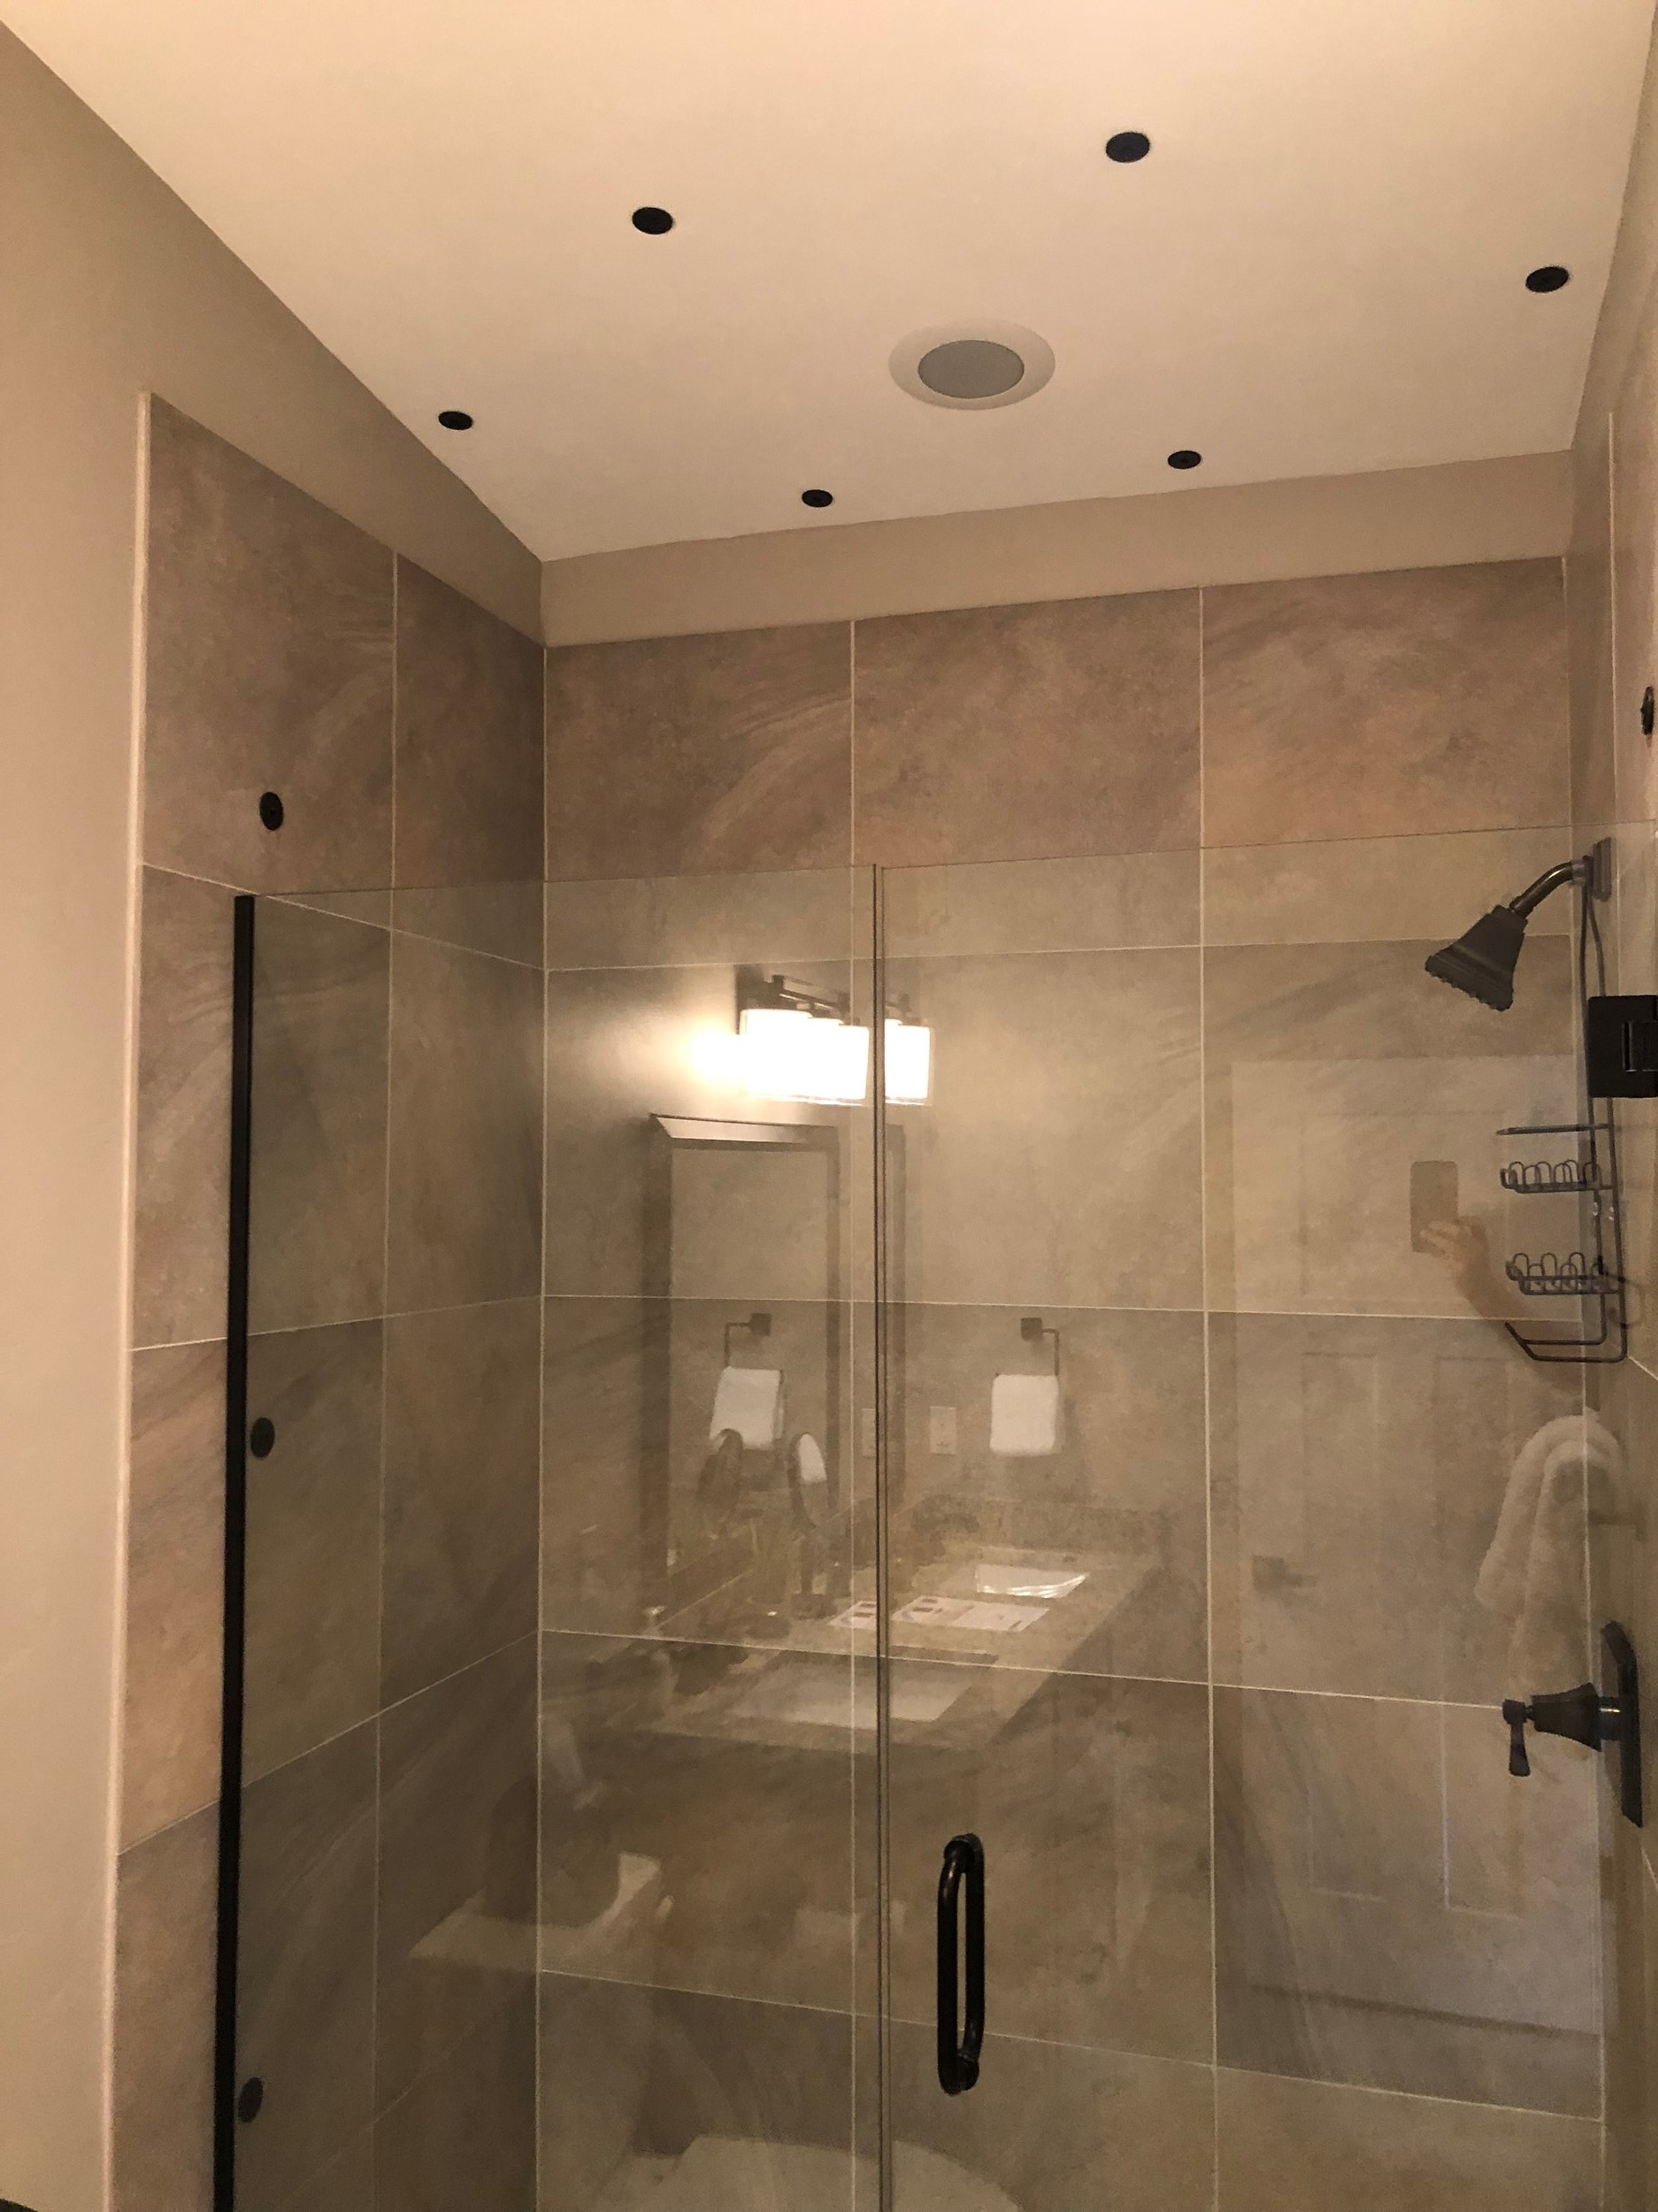 Shower with air-jet nozzles in the ceiling in Winter Park, Colorado.